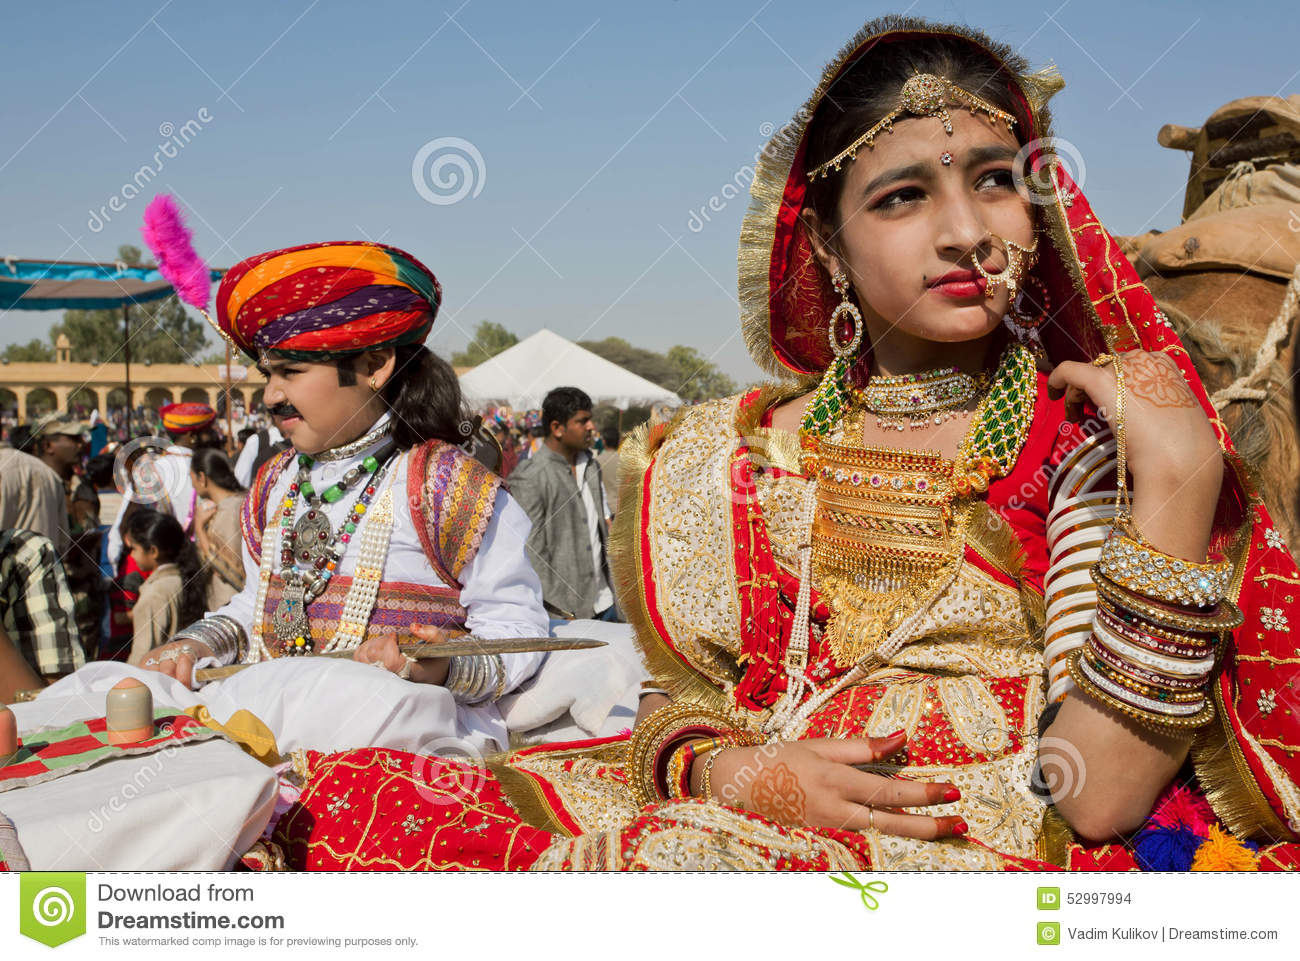 Girl Gold Jewelry Traditional Dress India Jaisalmer Unidentified Sit Camel Cart Carnaval Desert Festival